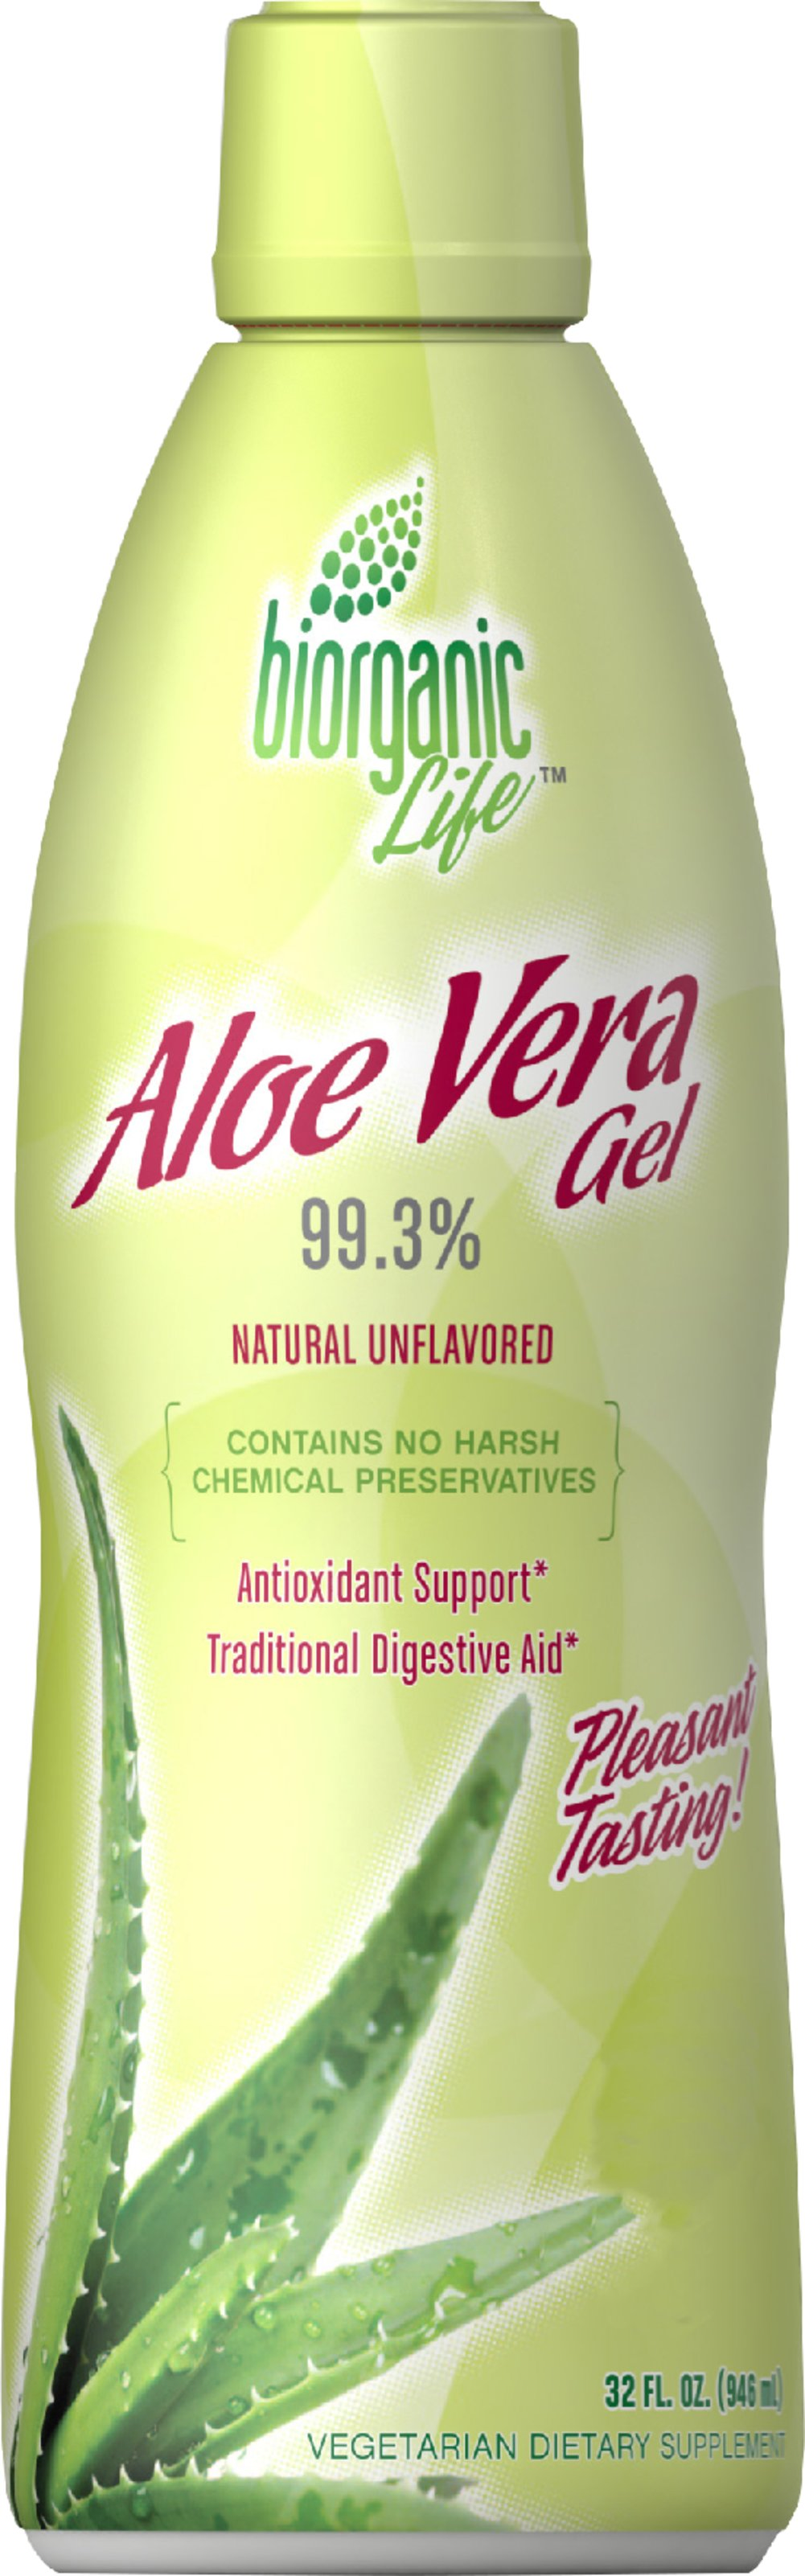 Aloe Vera Gel Drink 99.3%  32 fl oz Bottle